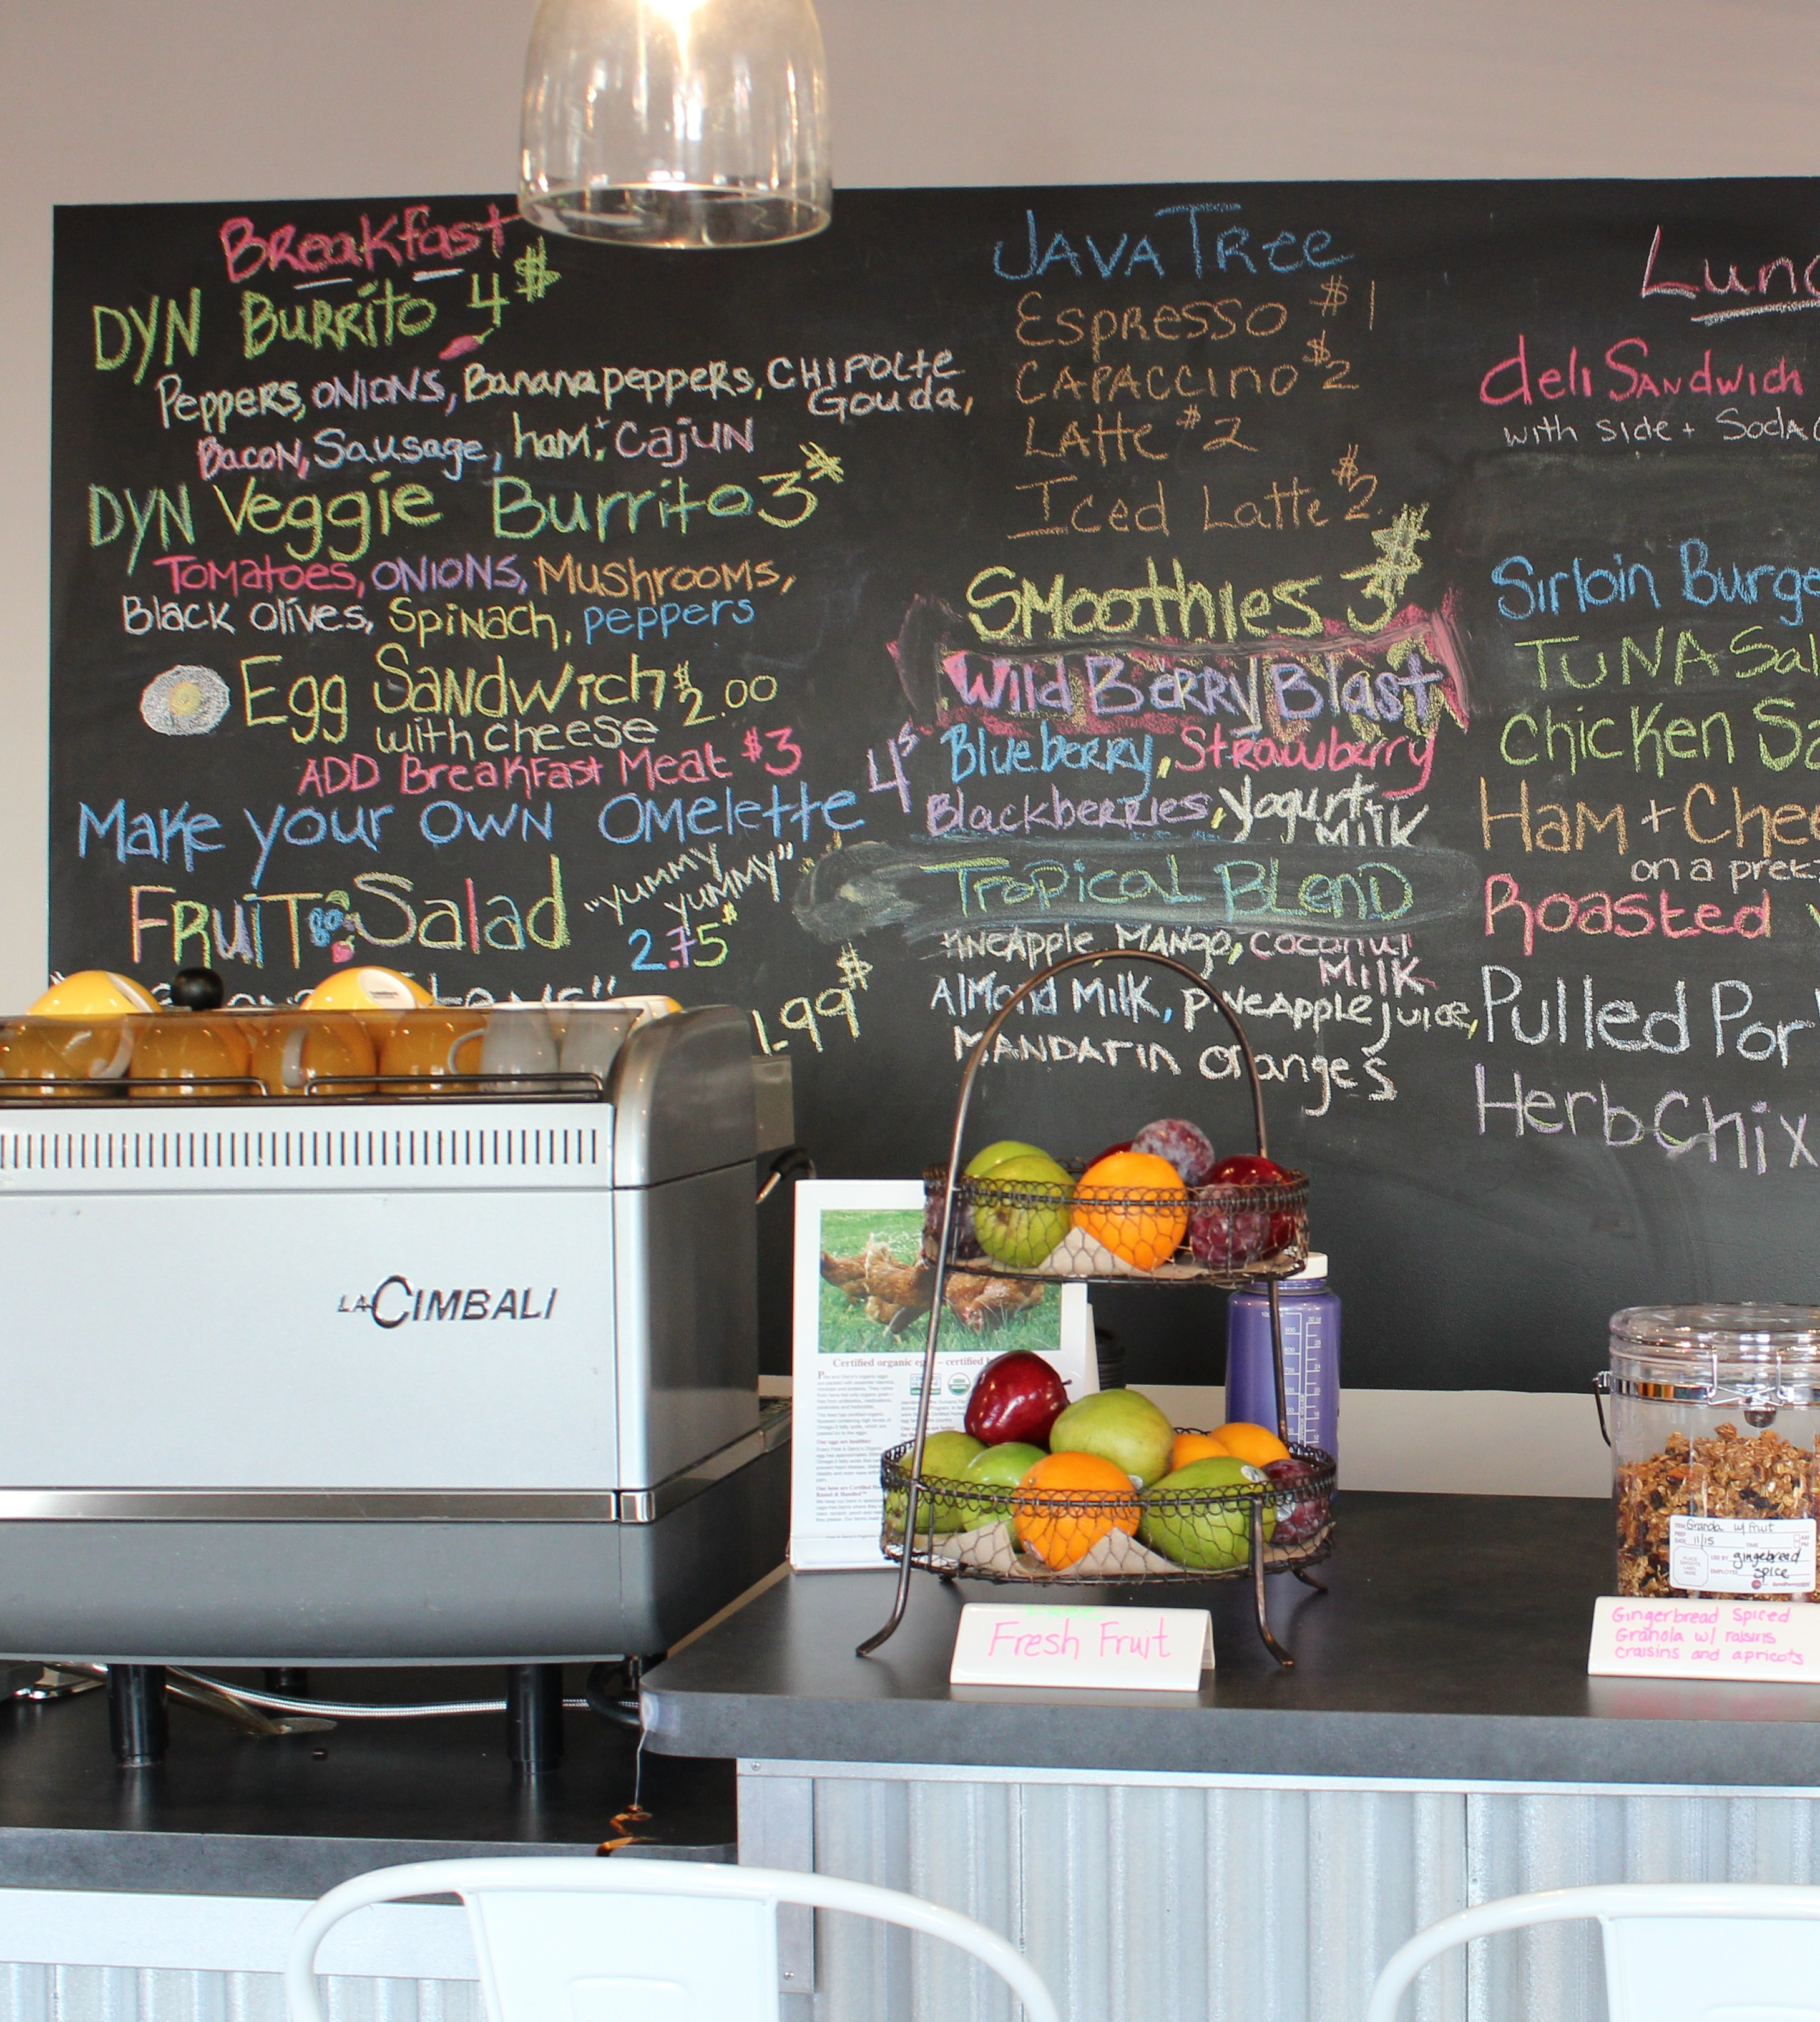 Manchester's Dyn, Inc has a farm to table menu for their employees